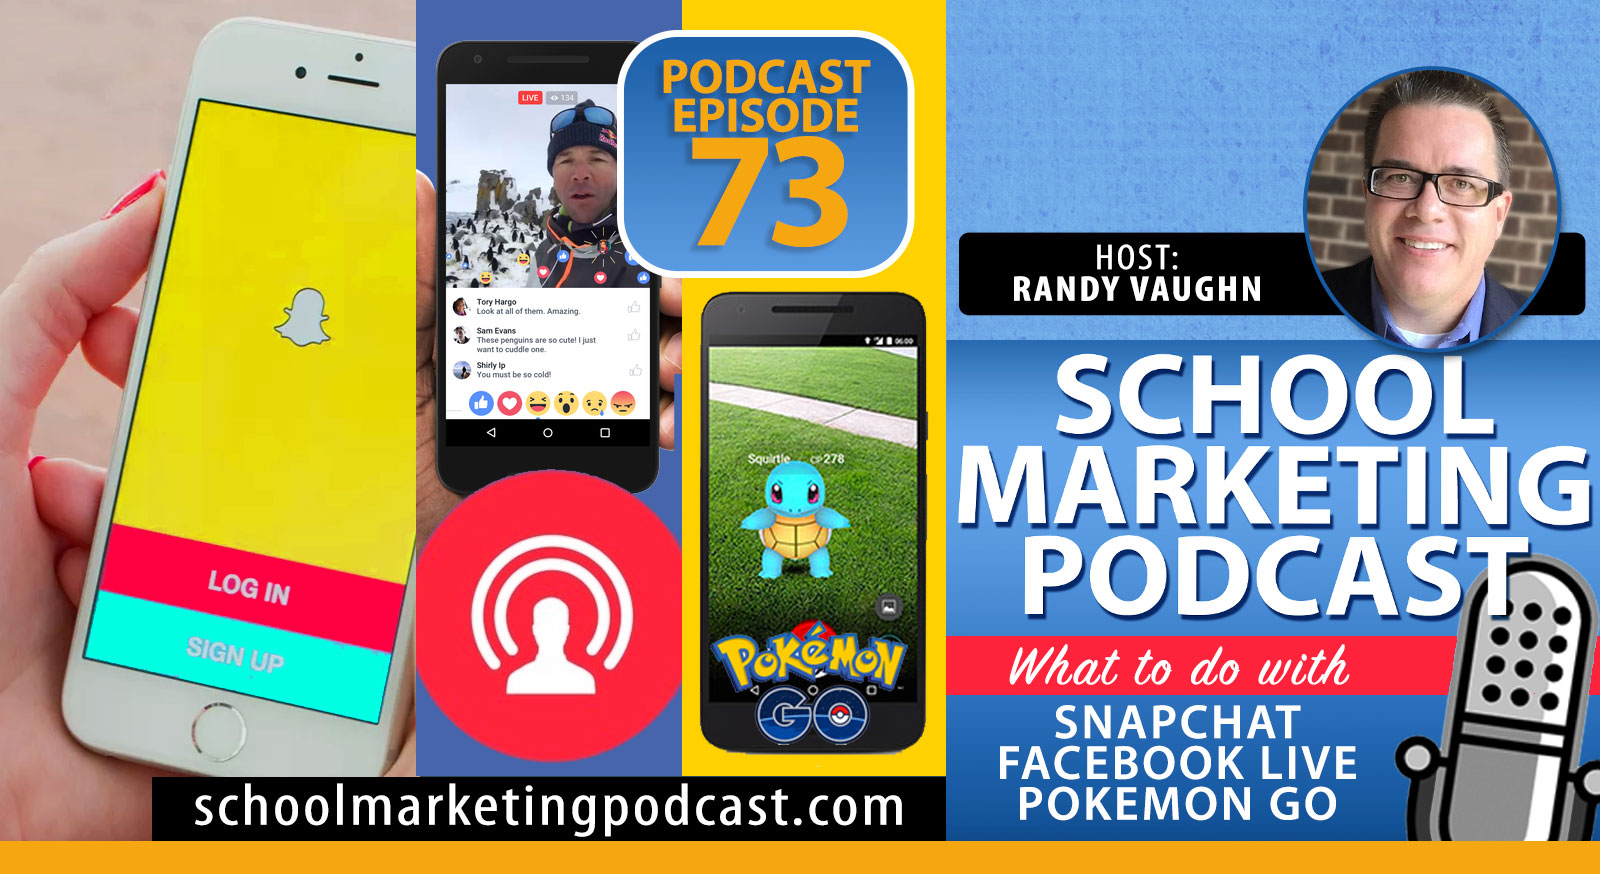 What to do with Pokemon Go, Snapchat and Facebook Live (School Marketing Podcast #73)